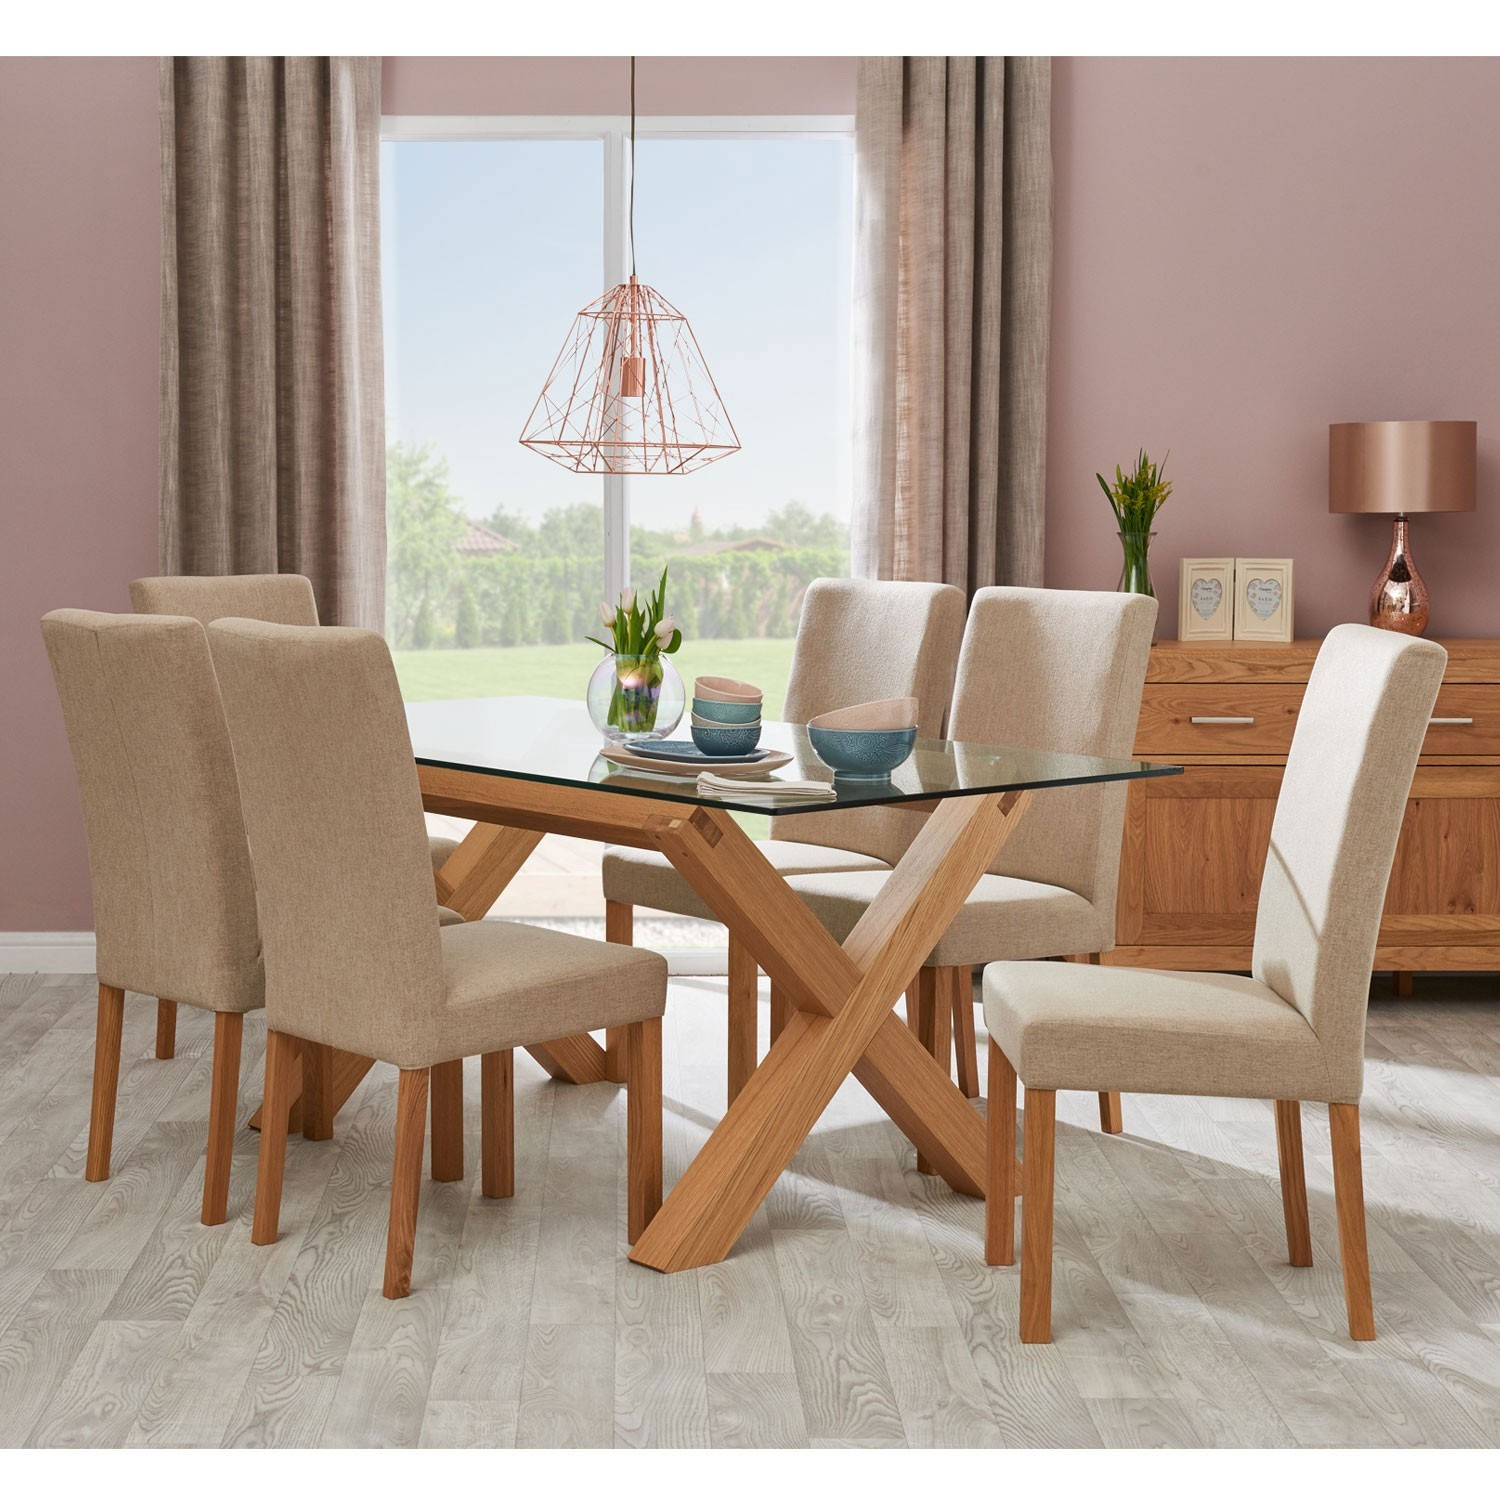 Glass Table Dining Set: Casa Toledo Glass Table & 6 Upholstered Chairs Dining Set